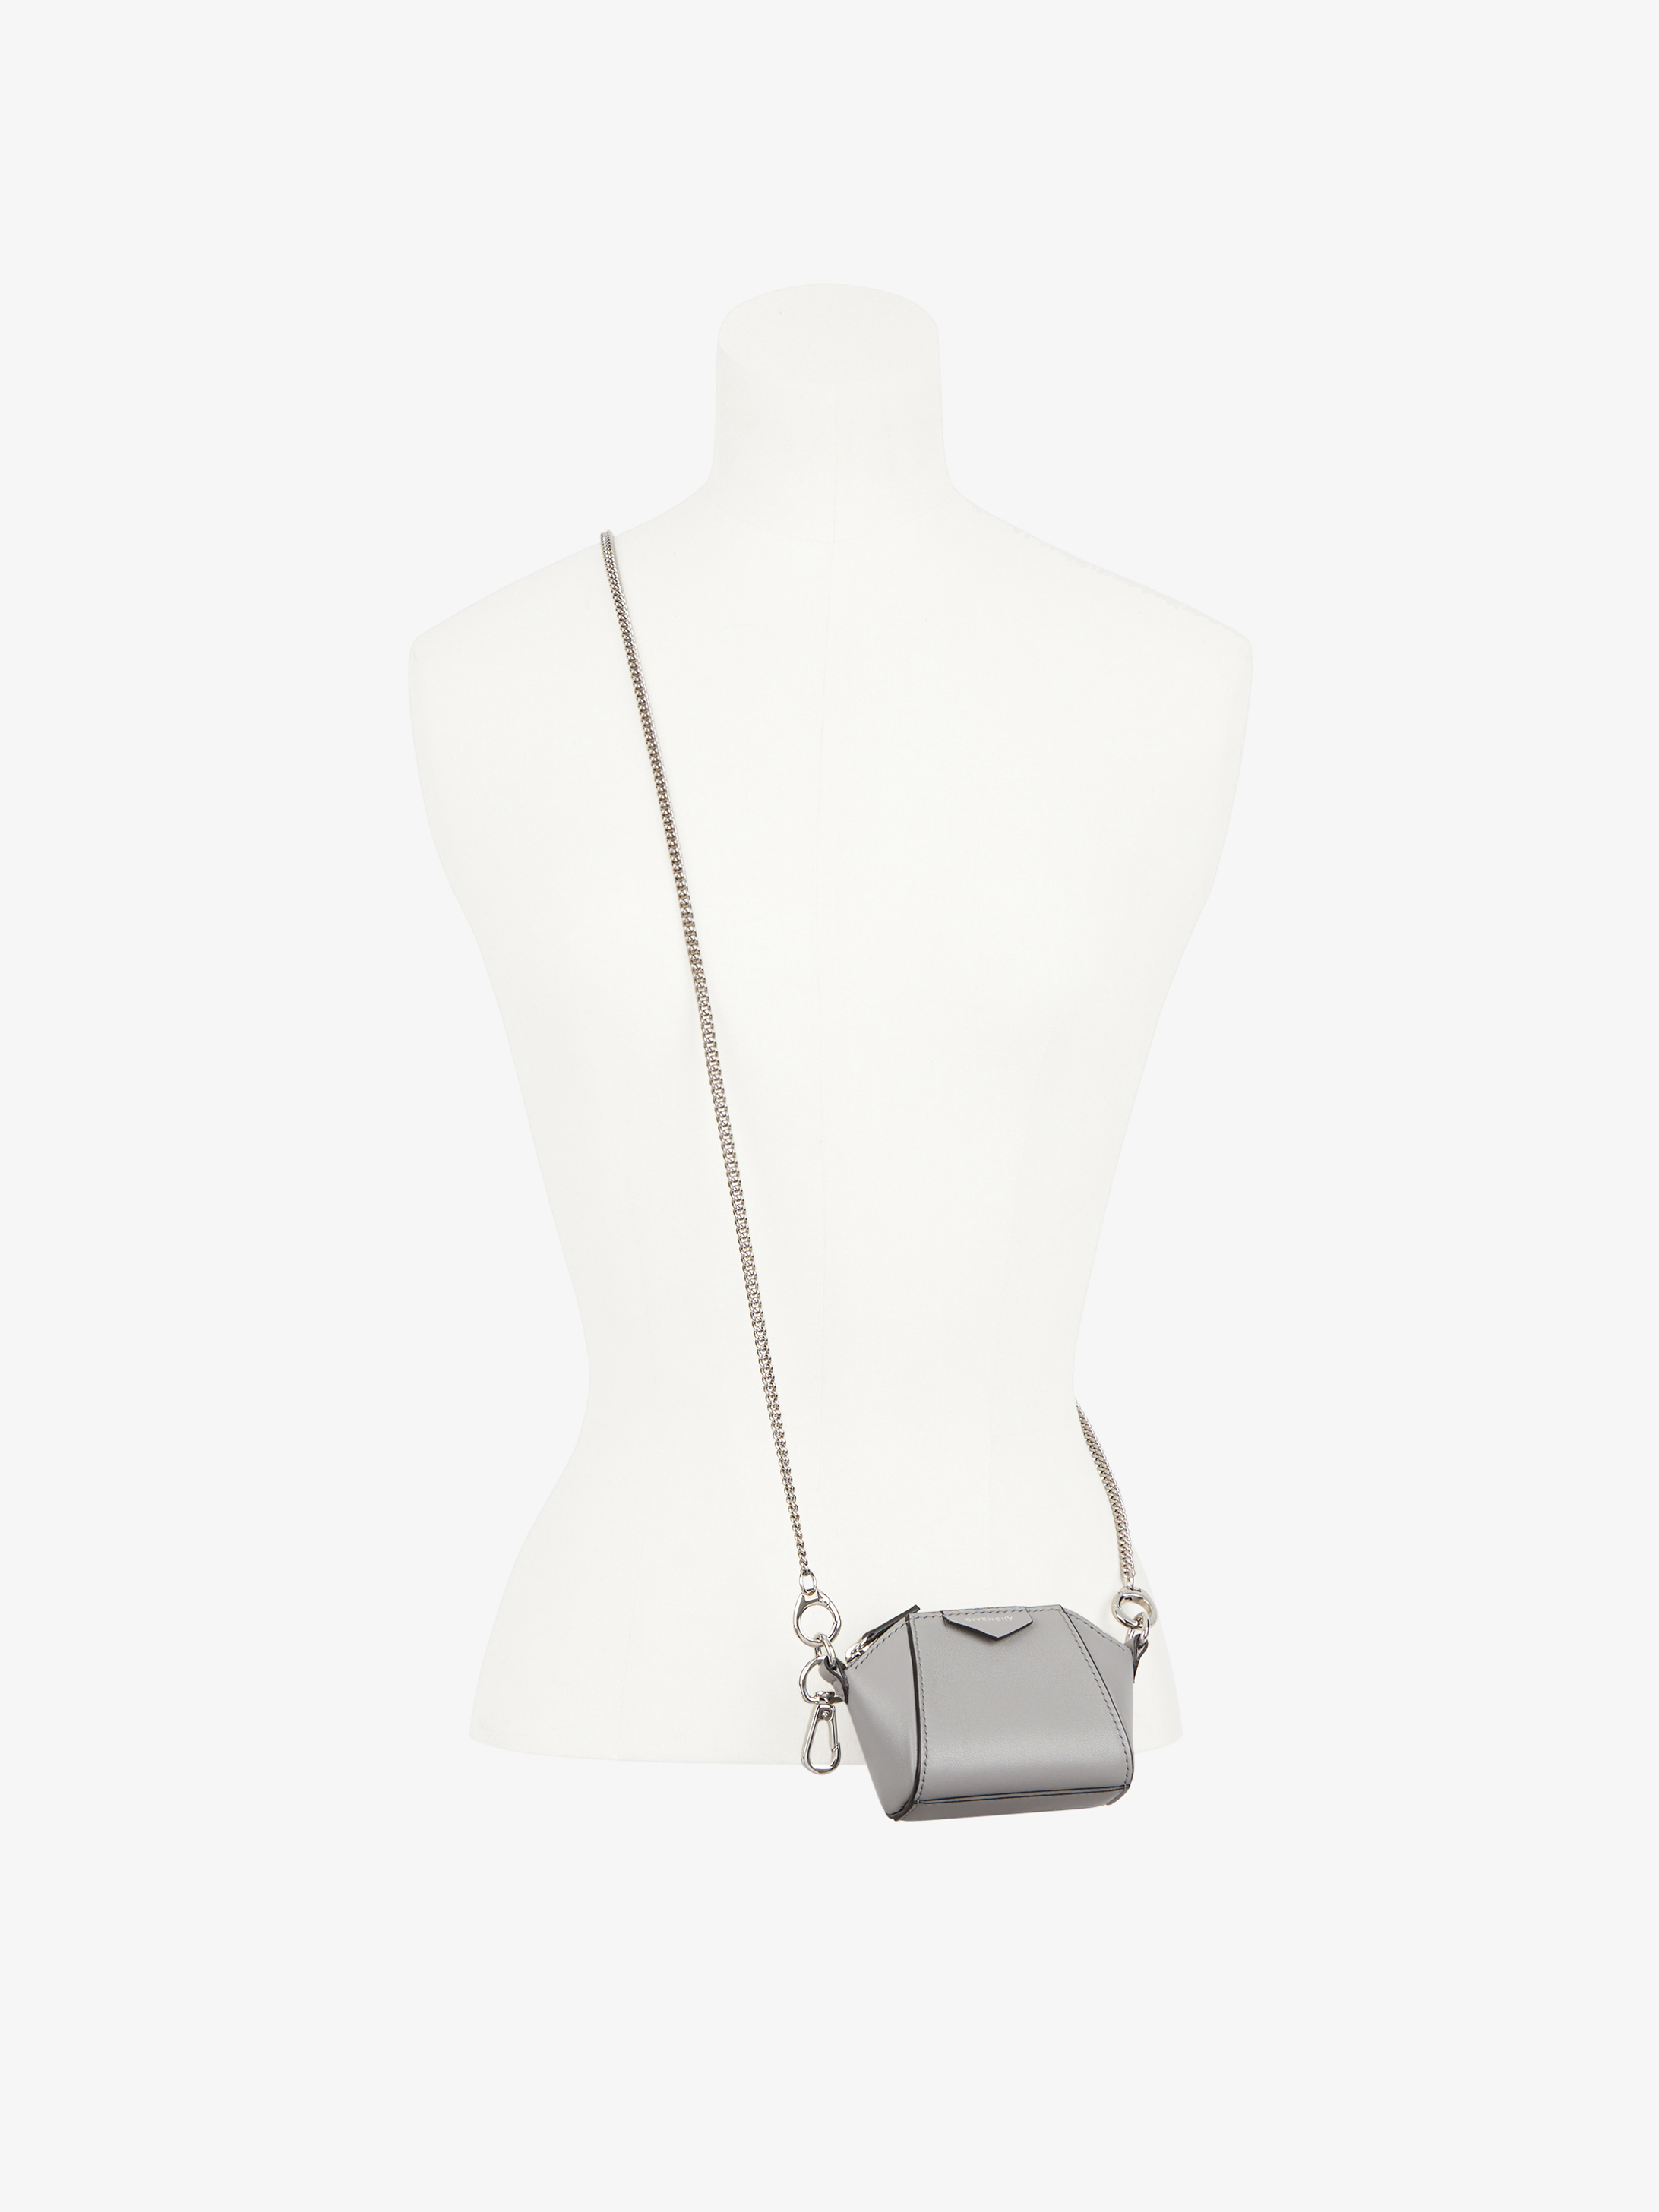 Baby Antigona bag in leather with chain